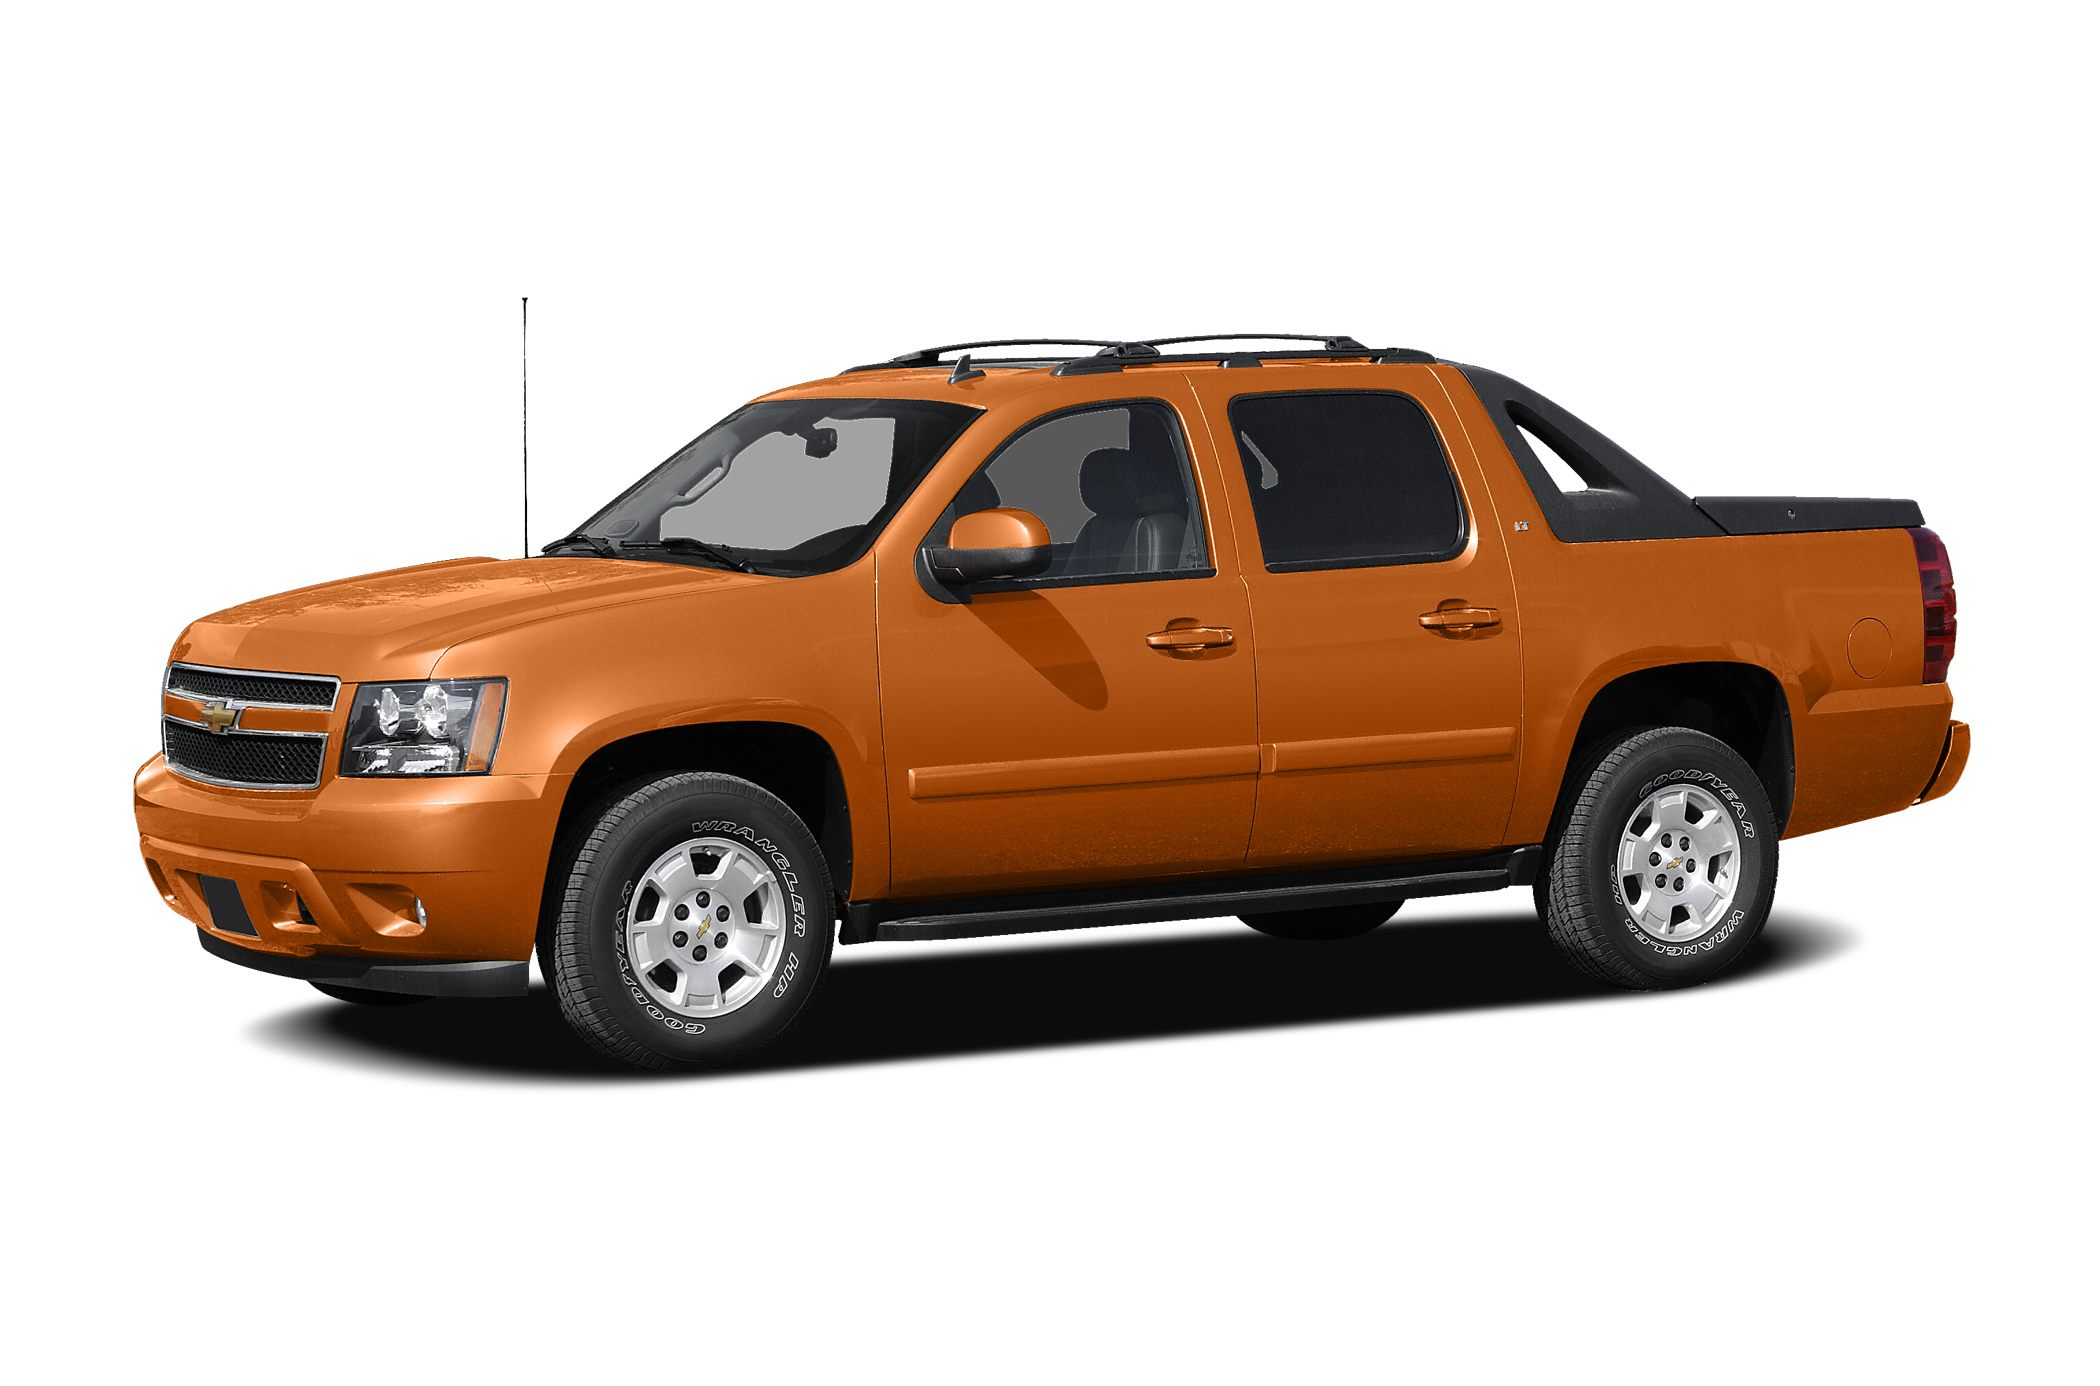 2009 Chevrolet Avalanche 1500 LTZ Crew Cab Pickup for sale in Lebanon for $20,800 with 148,477 miles.